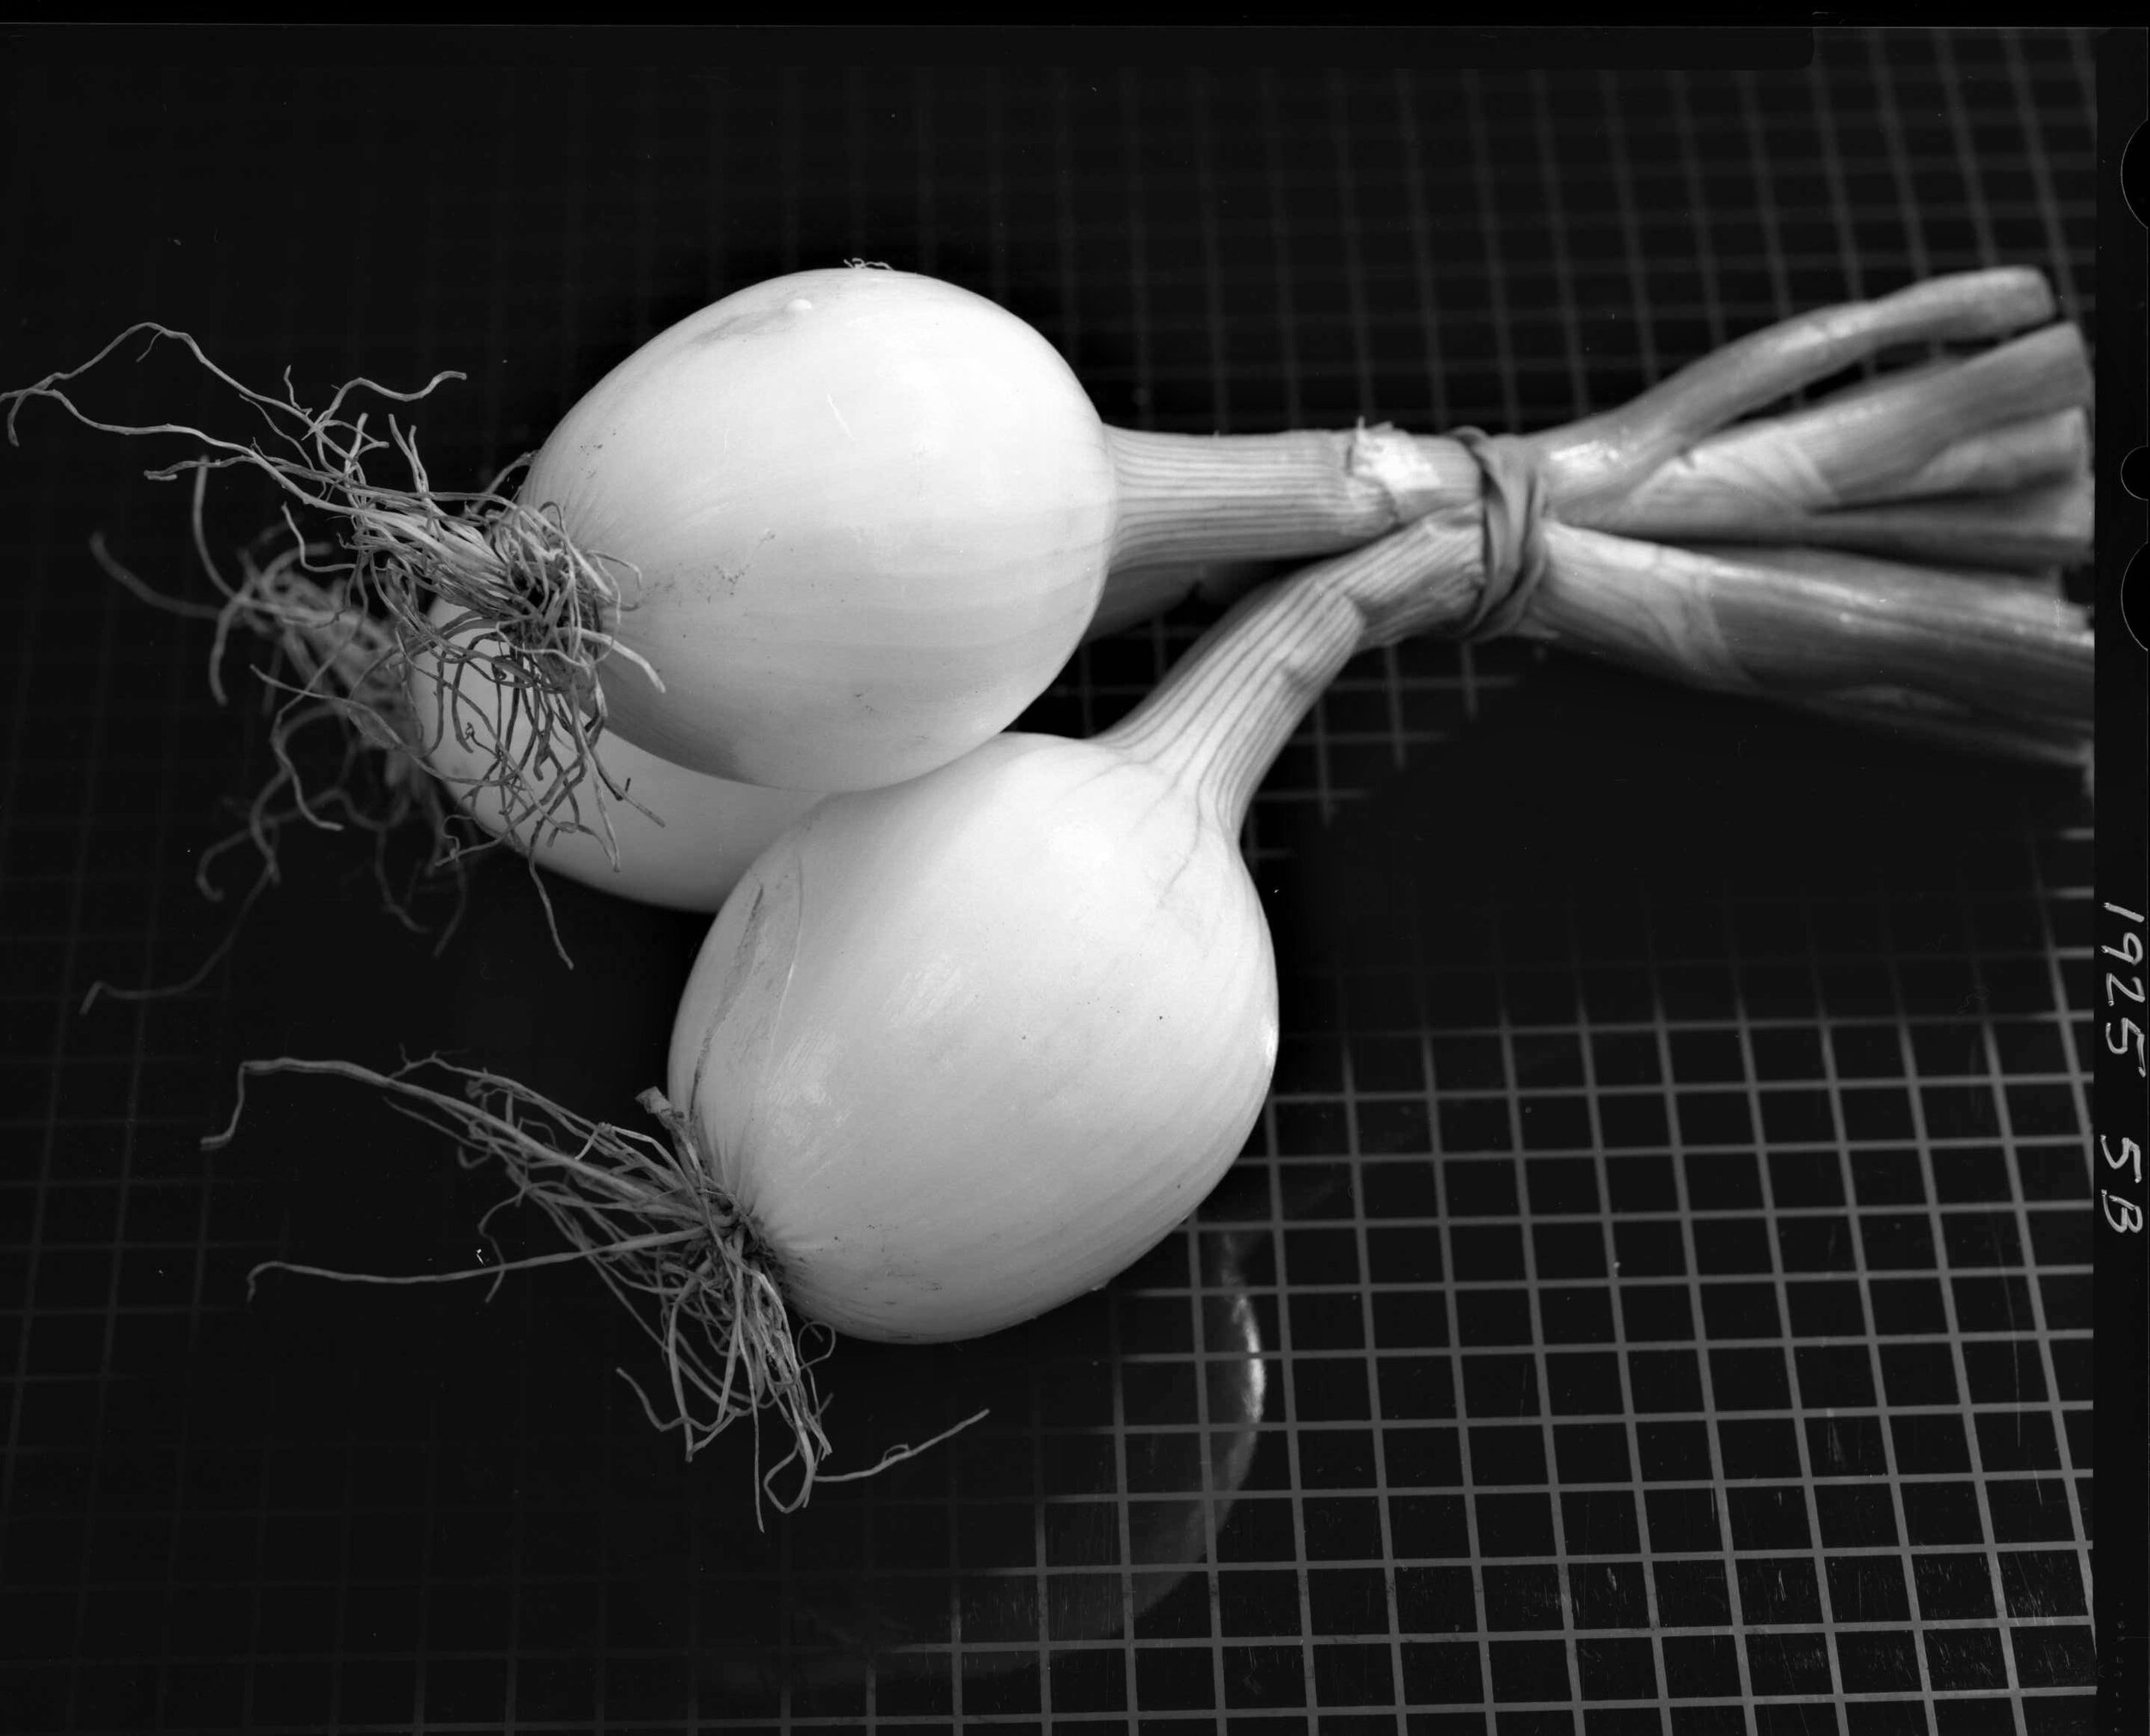 Onions, from the Produce Series